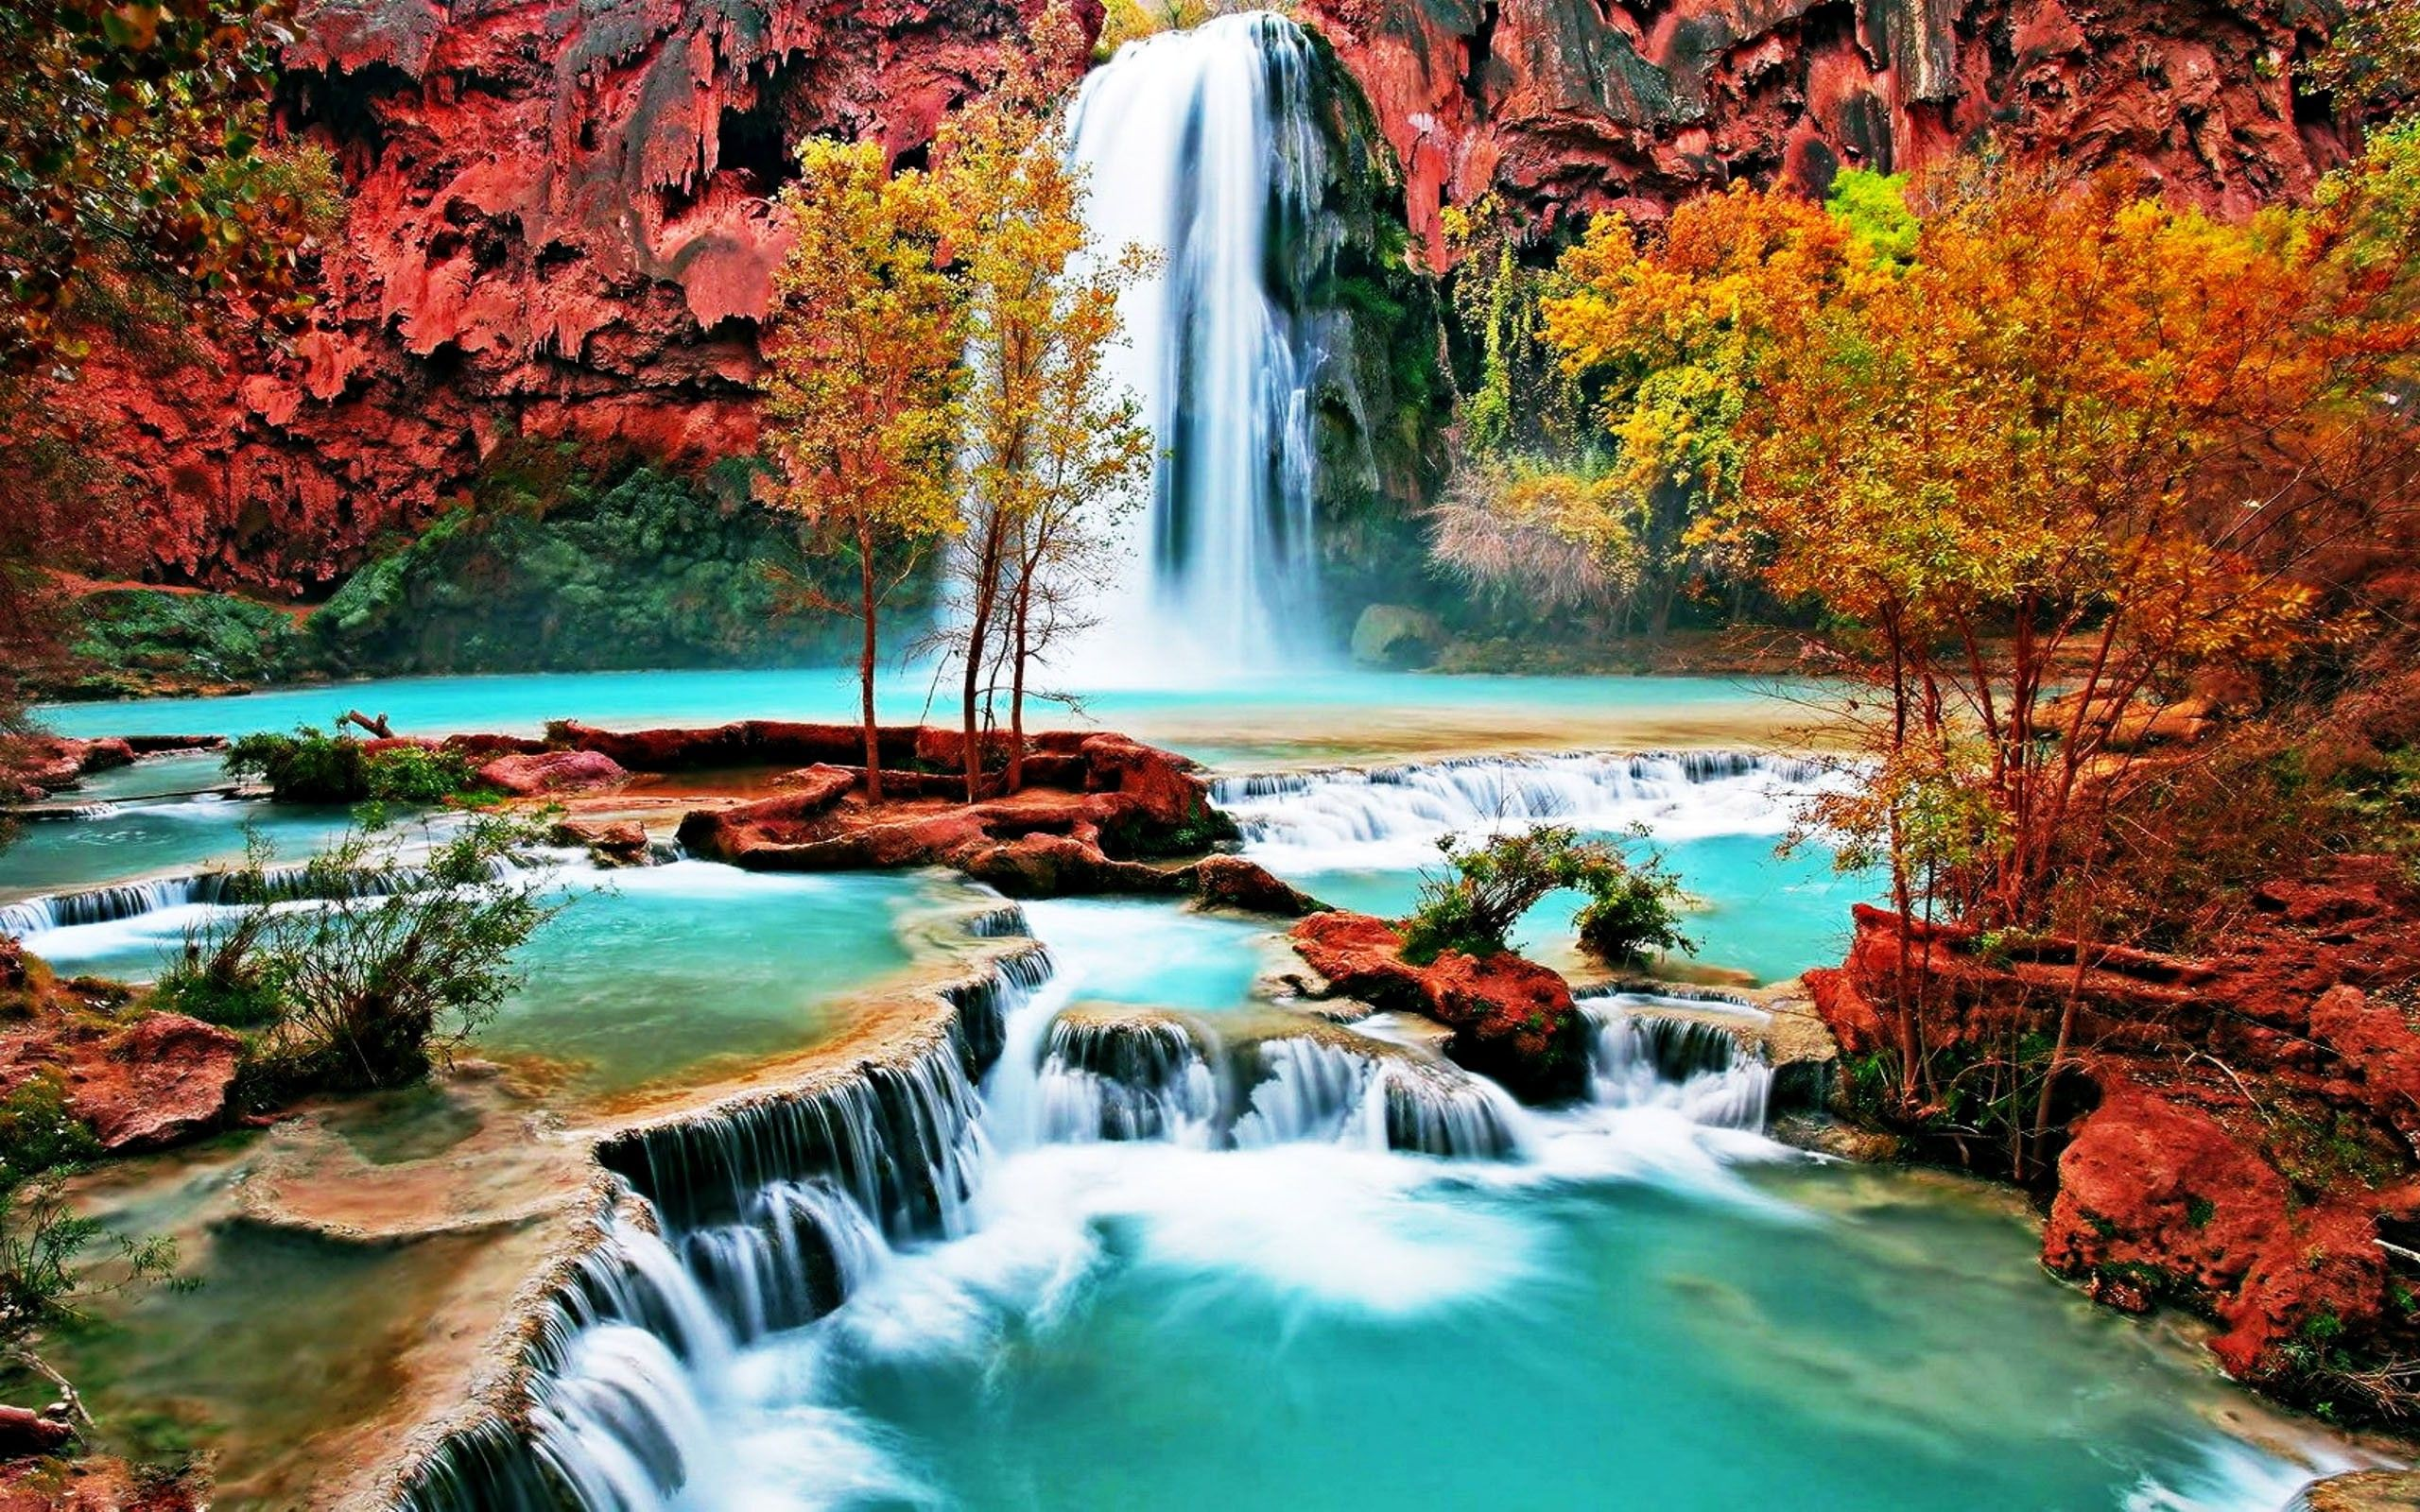 For Pc beautiful wallpapers for desktop background | Hd Wallpaper Full in 2019 | Waterfall ...